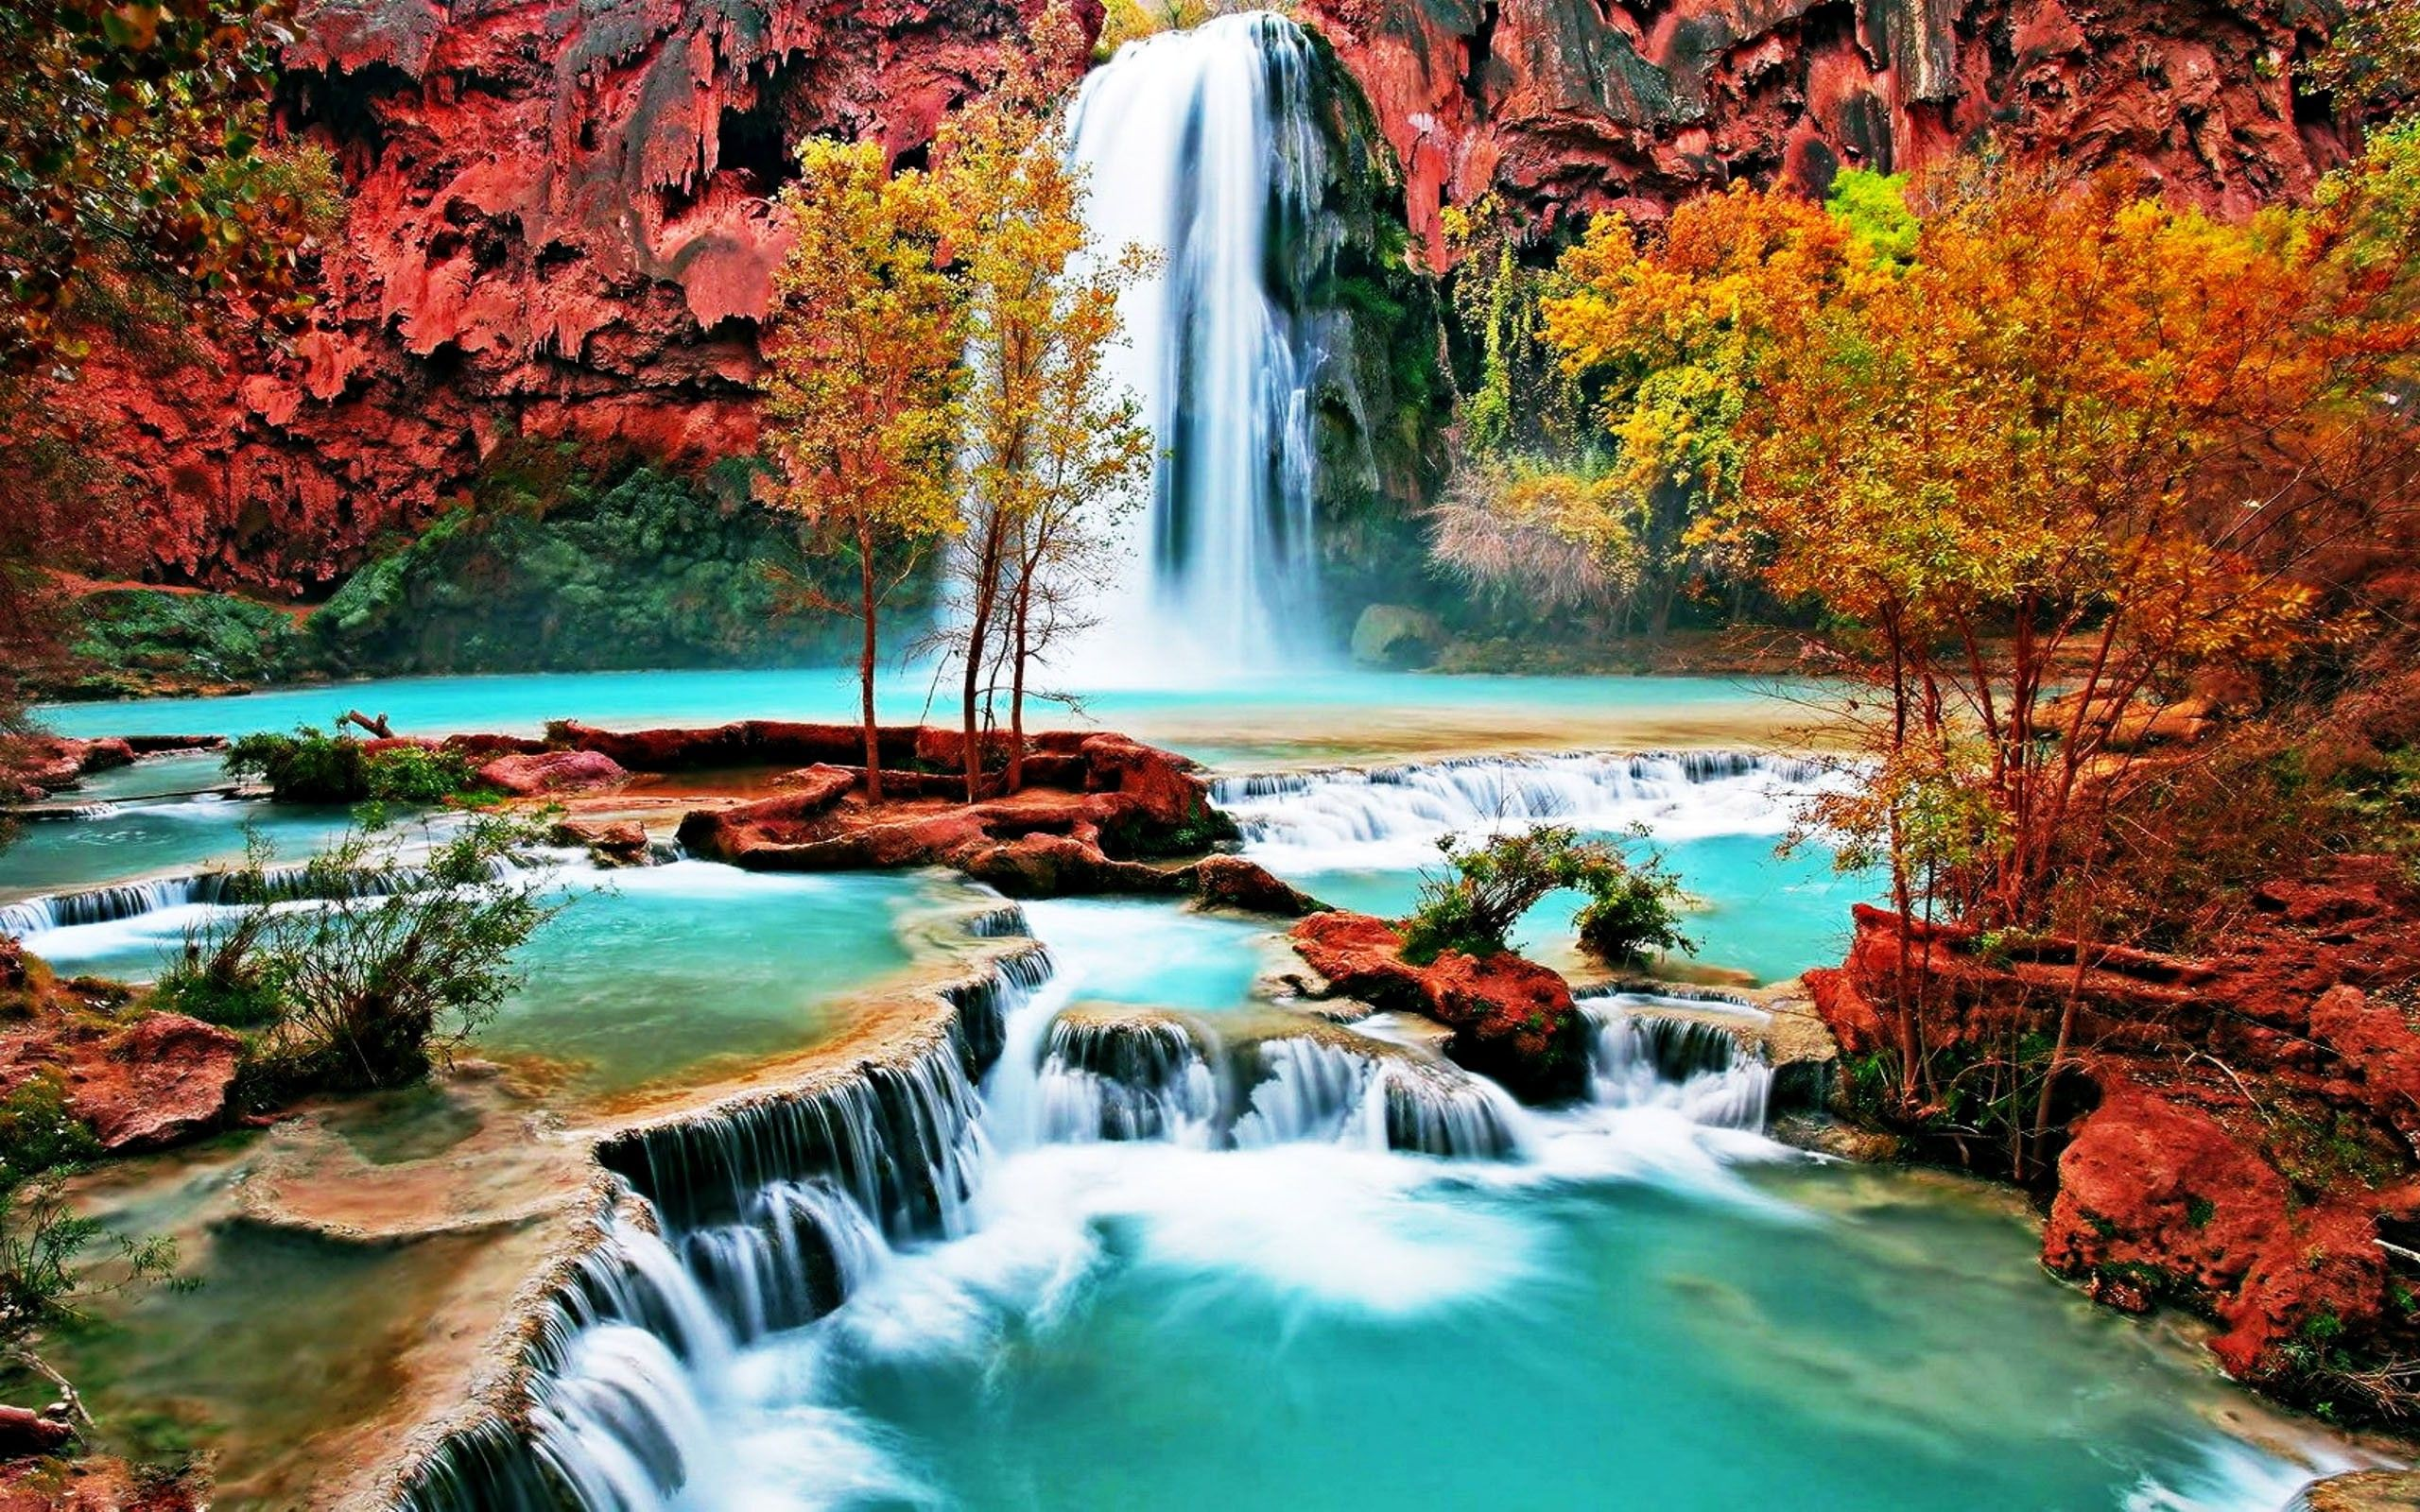 For Pc beautiful wallpapers for desktop background | Hd Wallpaper Full in 2019 | Waterfall ...